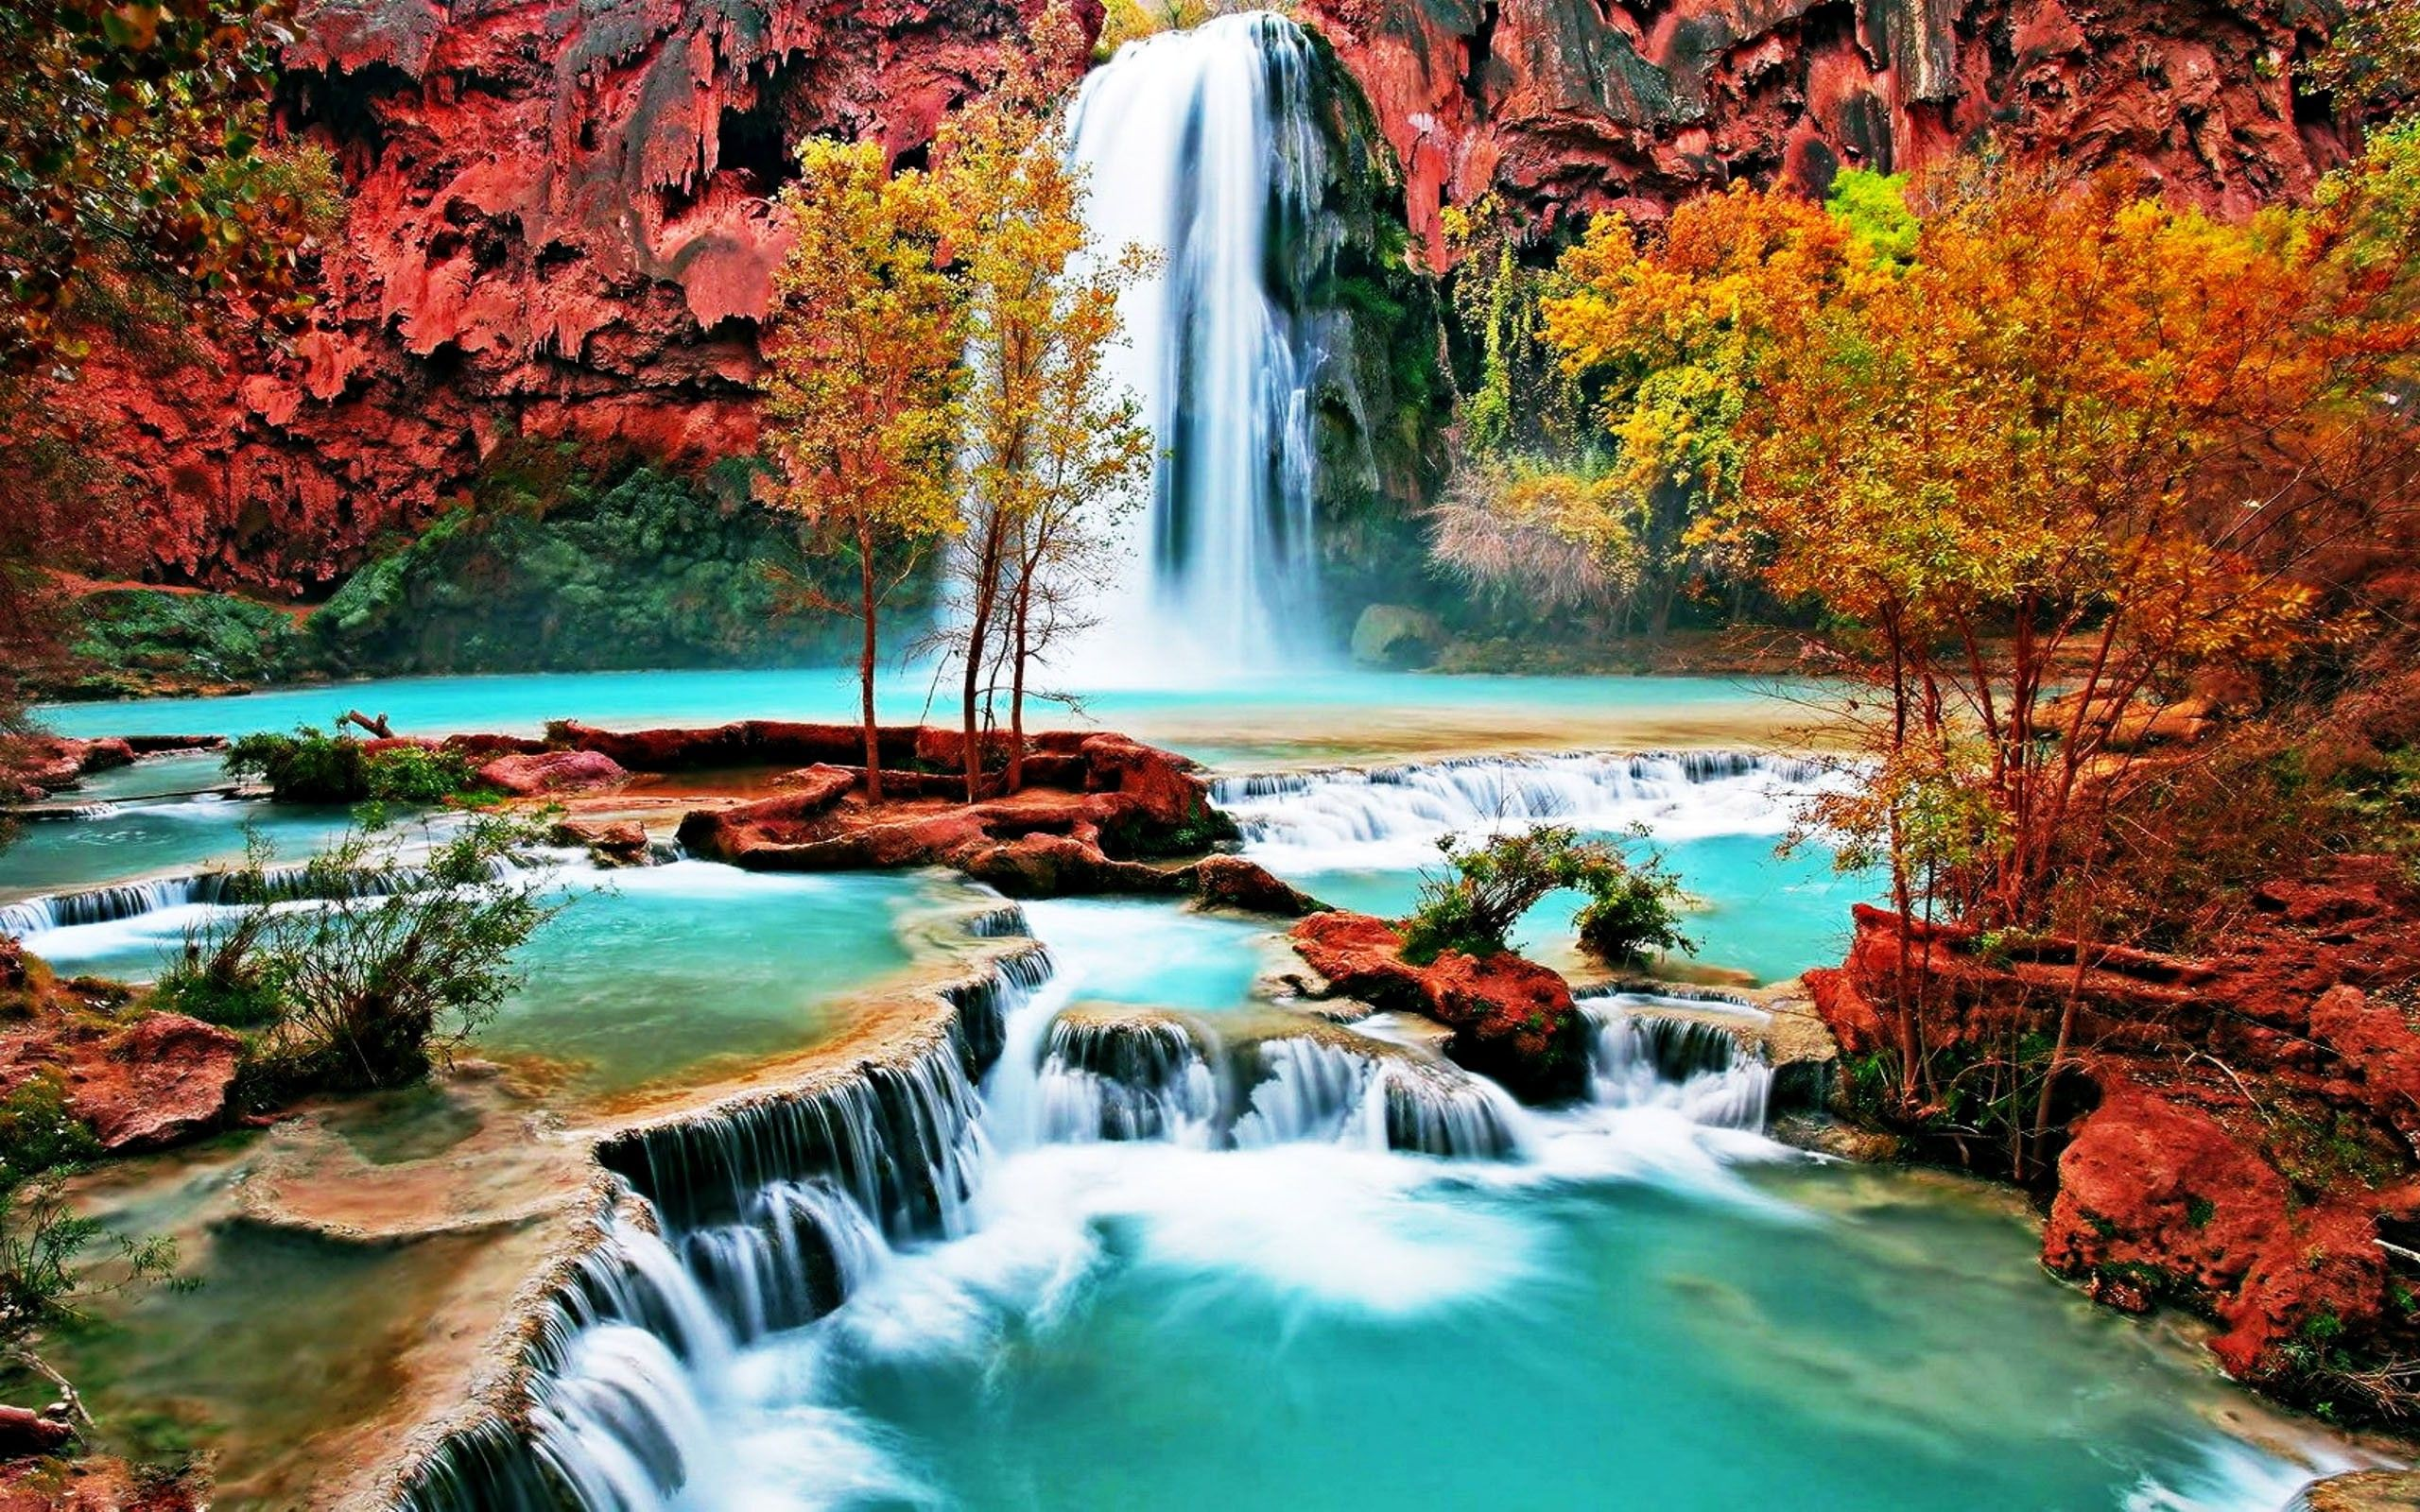 For Pc beautiful wallpapers for desktop background | Hd Wallpaper Full in 2019 | Waterfall ...